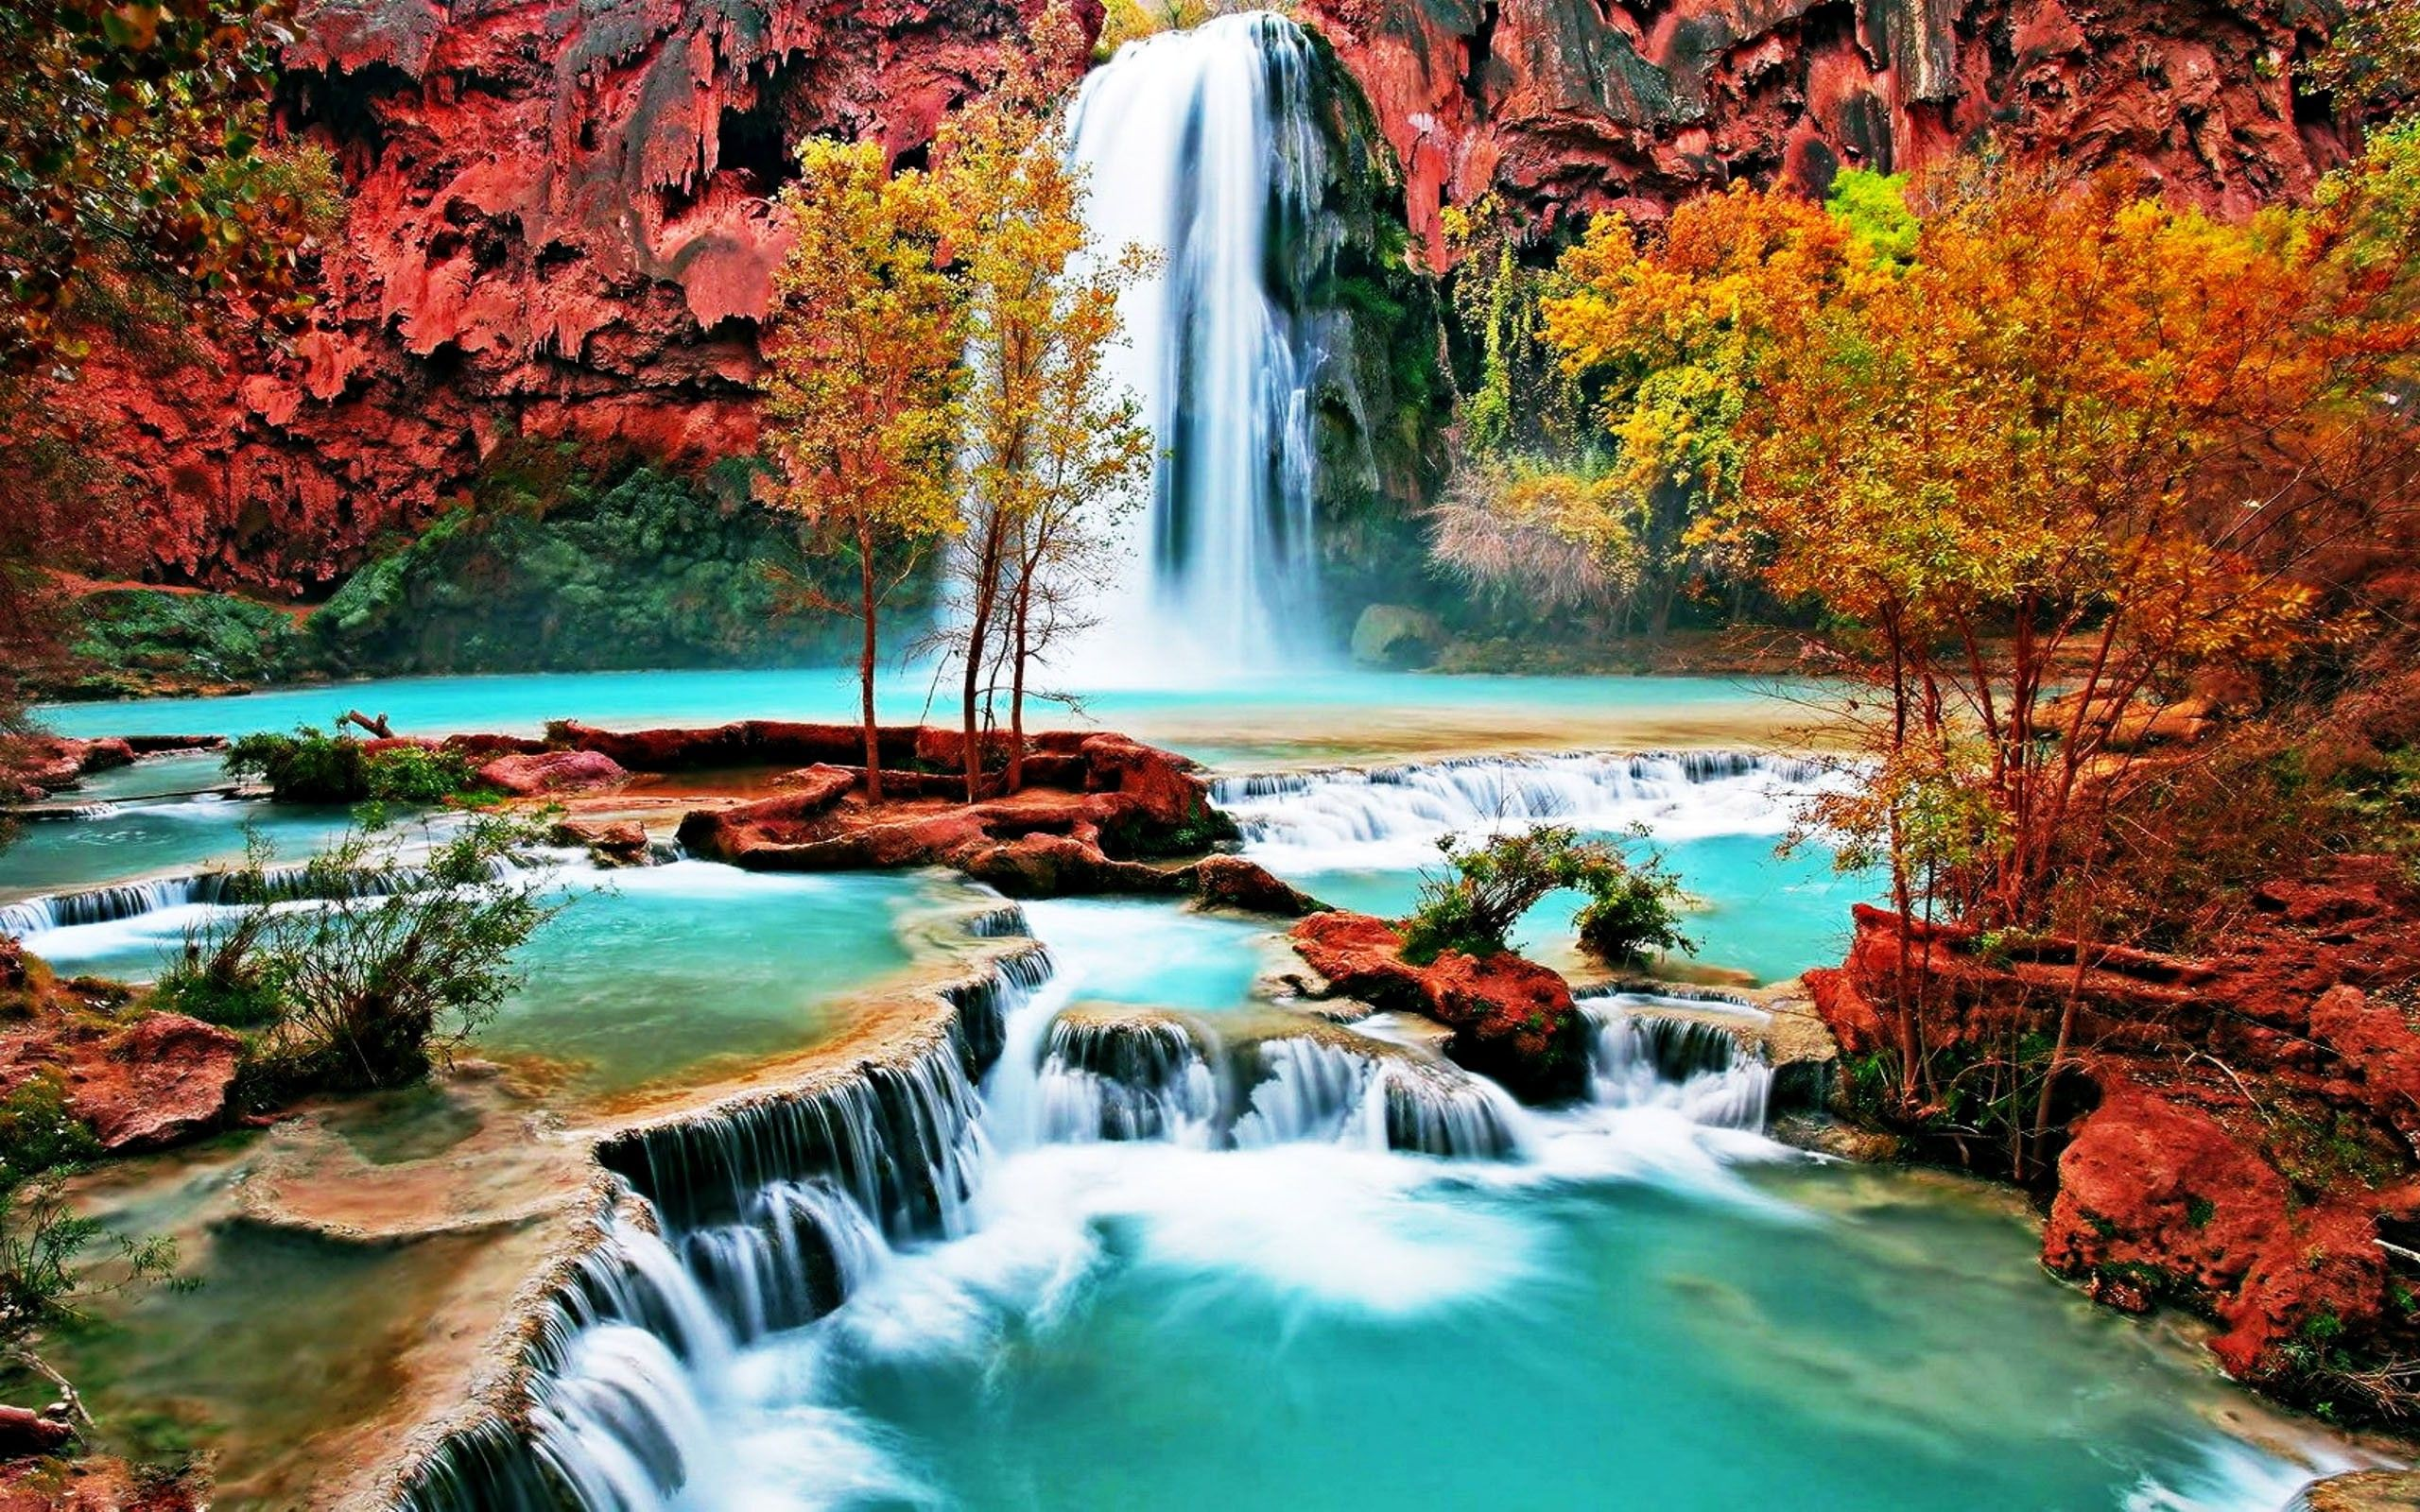 For Pc beautiful wallpapers for desktop background | Hd Wallpaper Full in 2019 | Waterfall ...